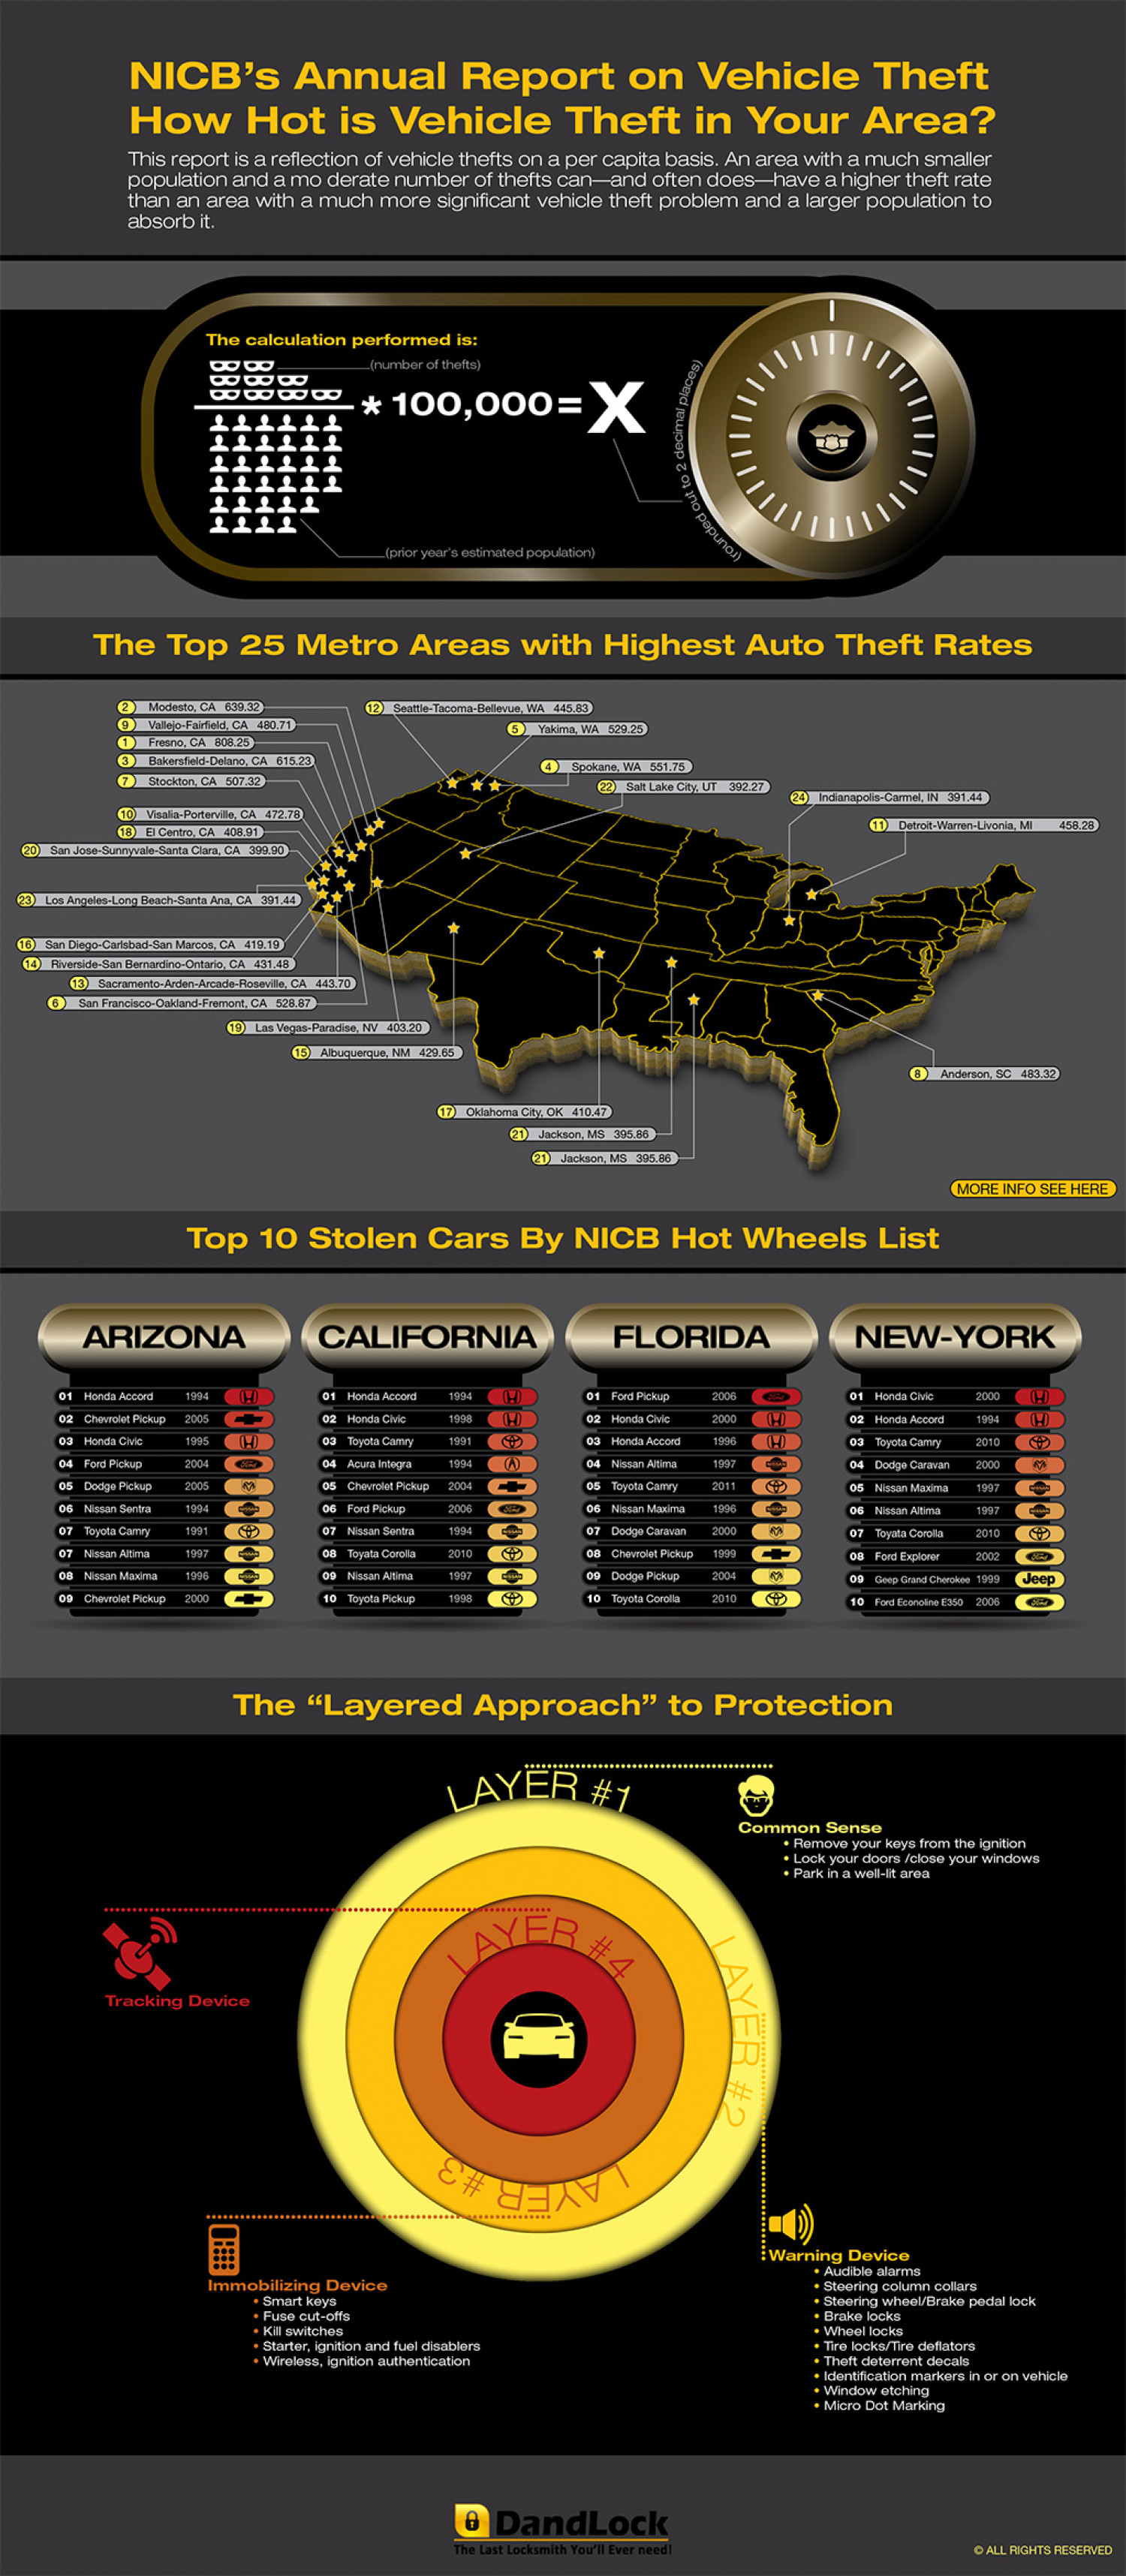 How Hot is Vehicle Theft in Your Area? Infographic